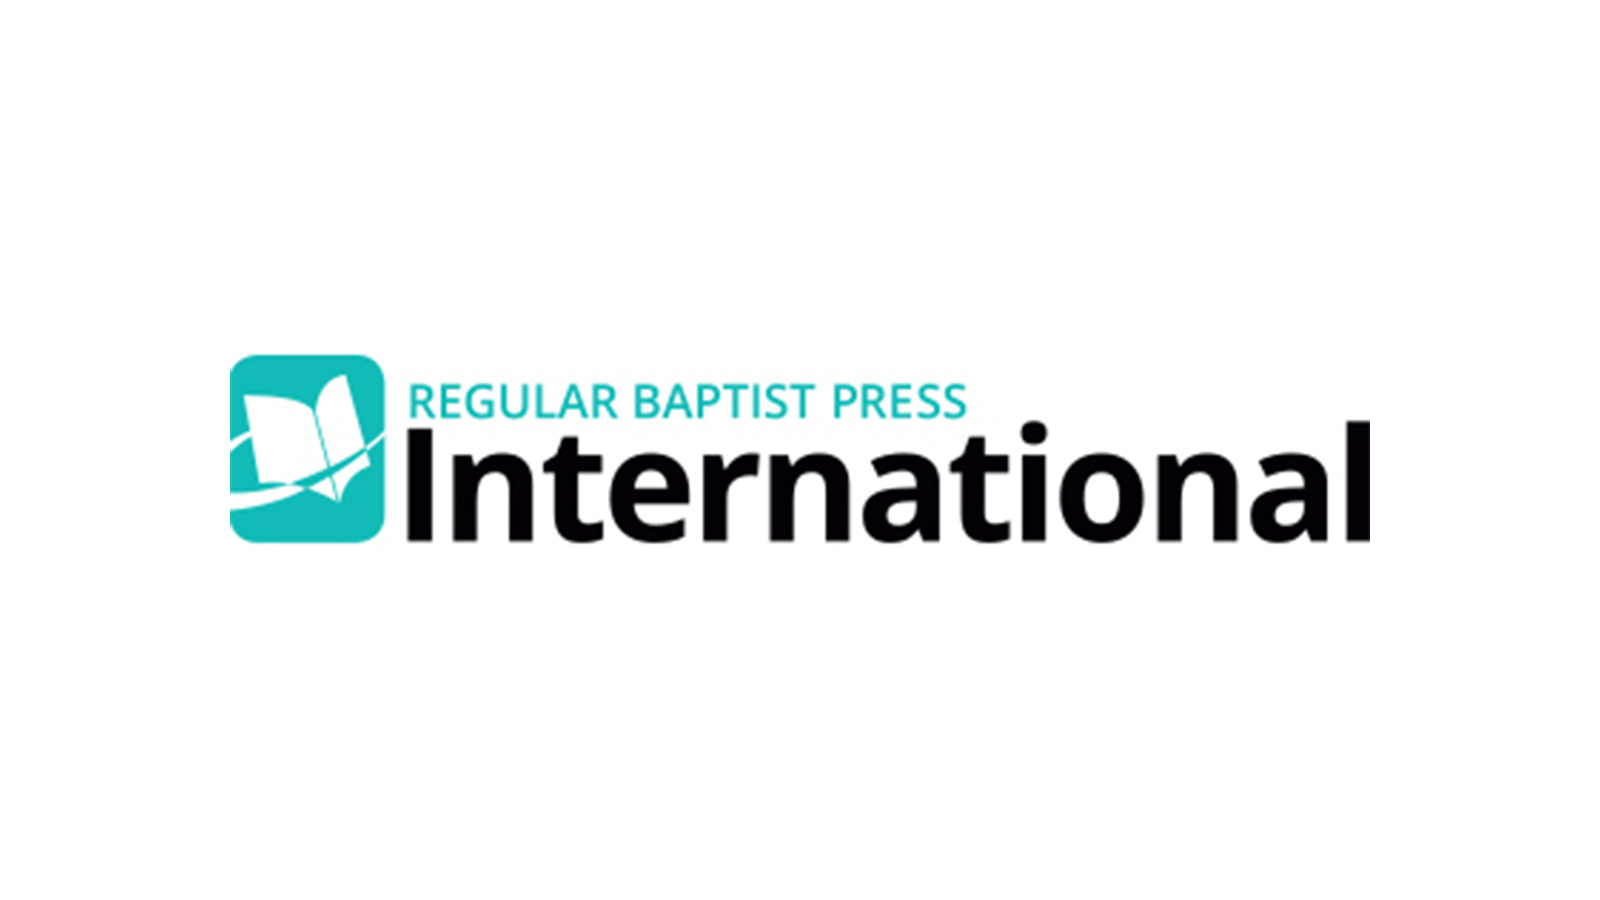 Missionary Regular Baptist Press International